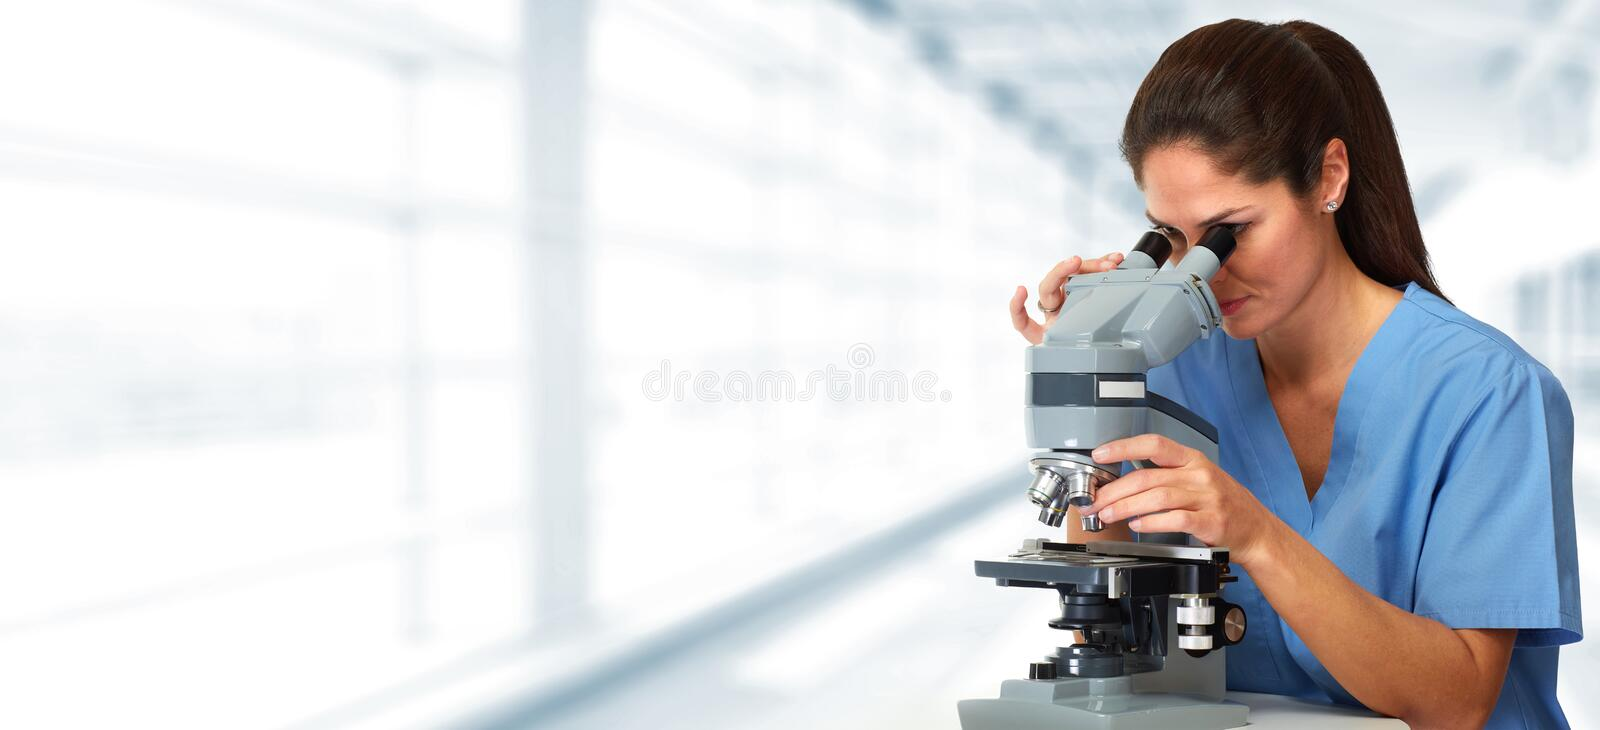 Medical doctor with microscope. Scientific doctor woman with microscope in medical laboratory royalty free stock image